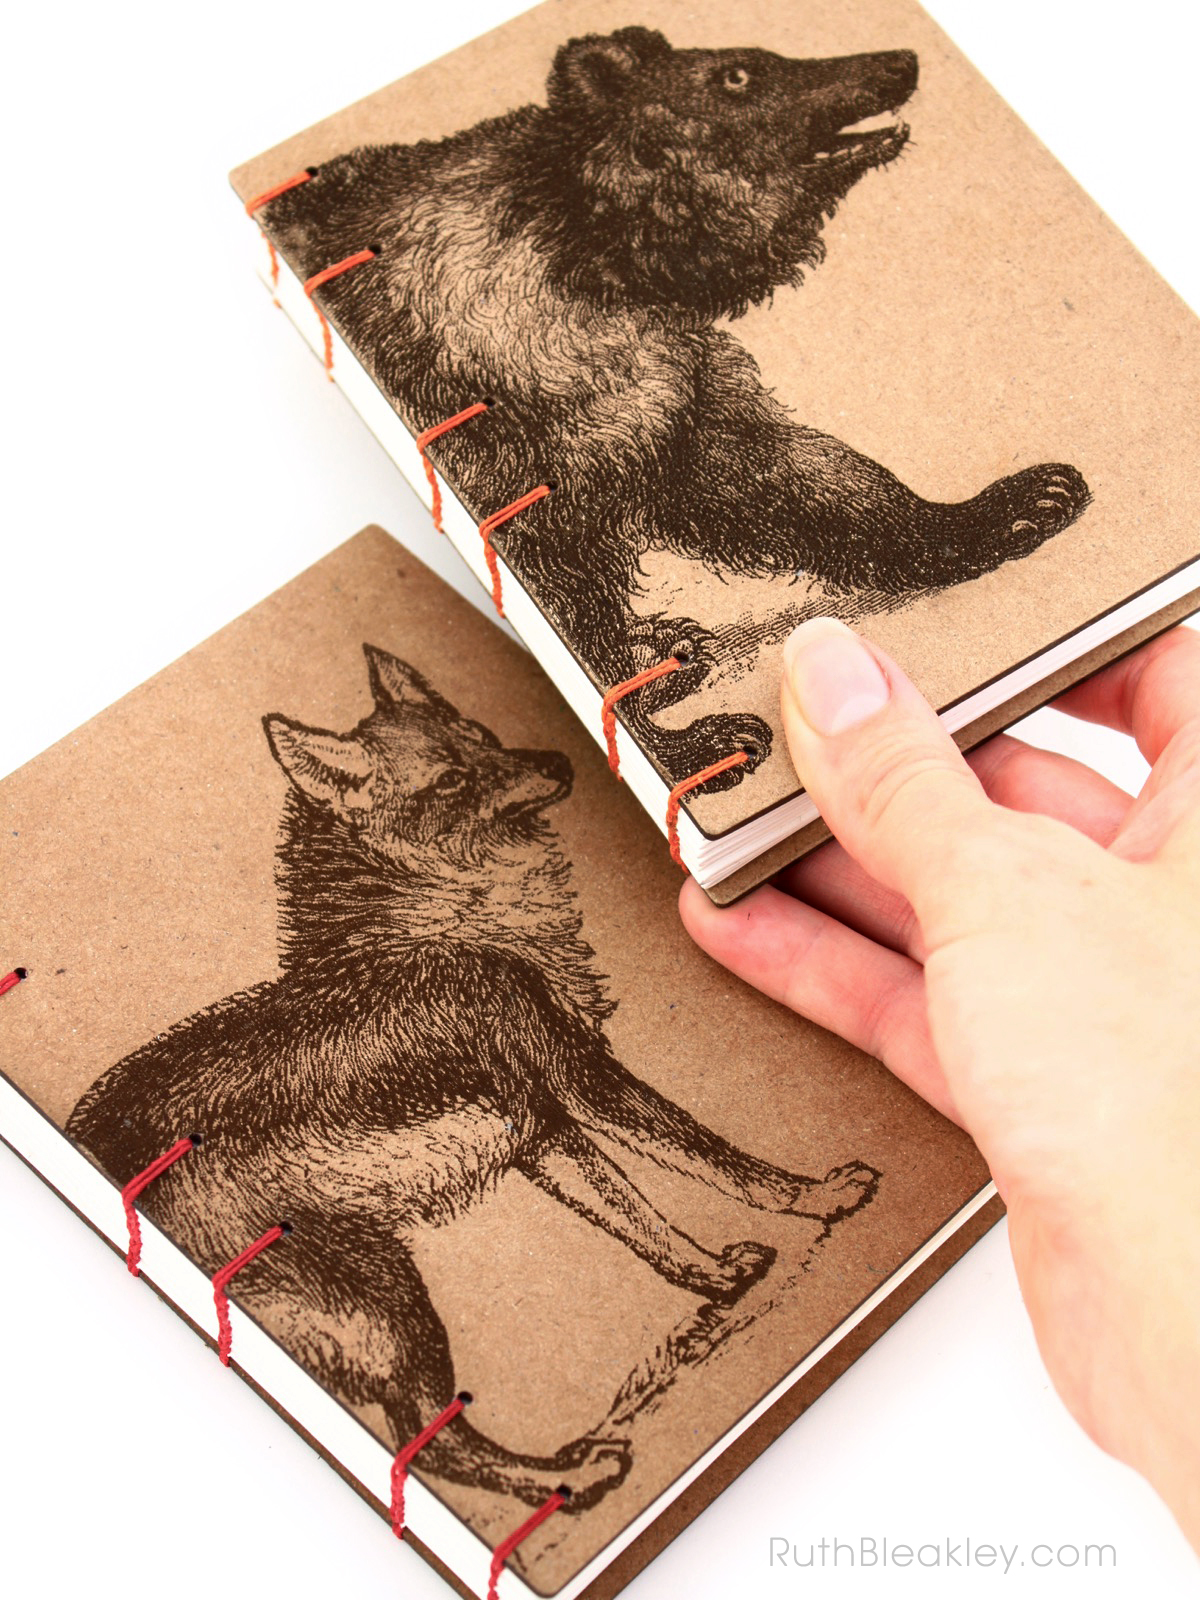 Coyote and Bear Journals handmade by American book artist Ruth Bleakley - 2